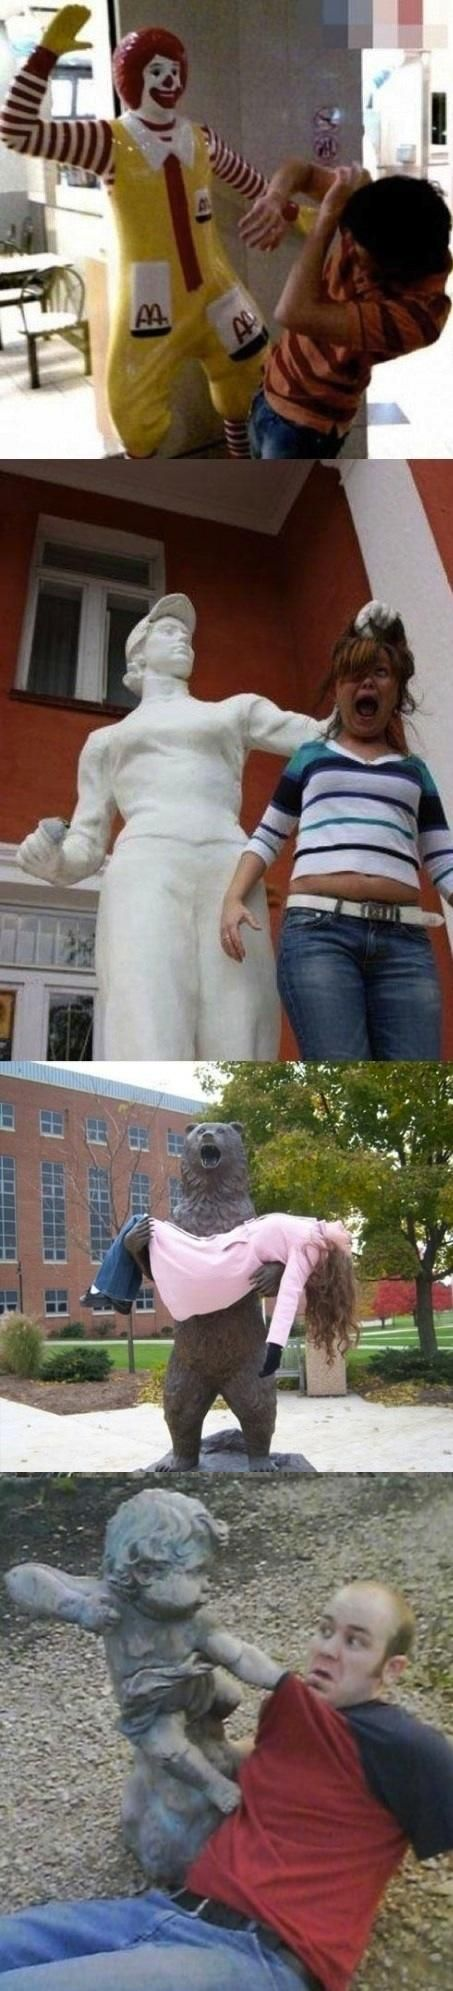 Ha! Makes me wanna find these statues!